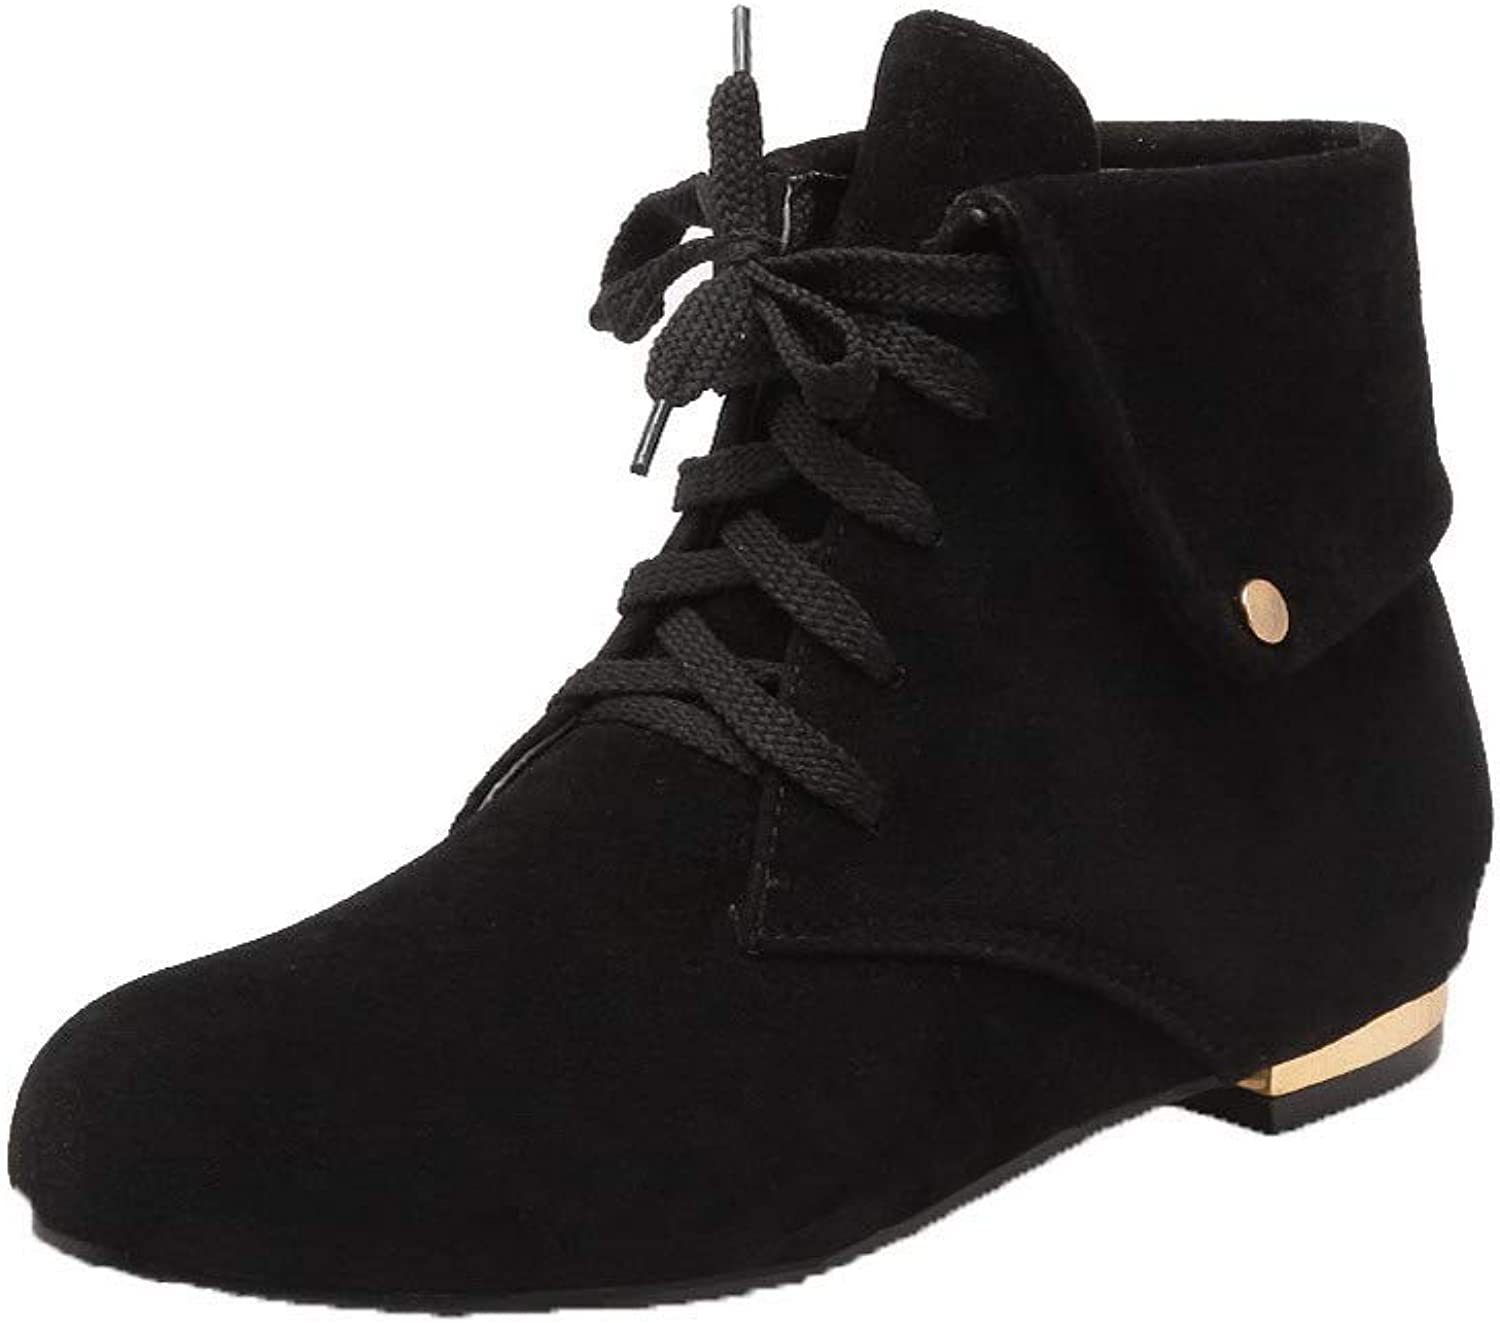 AllhqFashion Women's Ankle-High Solid Lace-Up Round-Toe Low-Heels Boots, FBUXD120352